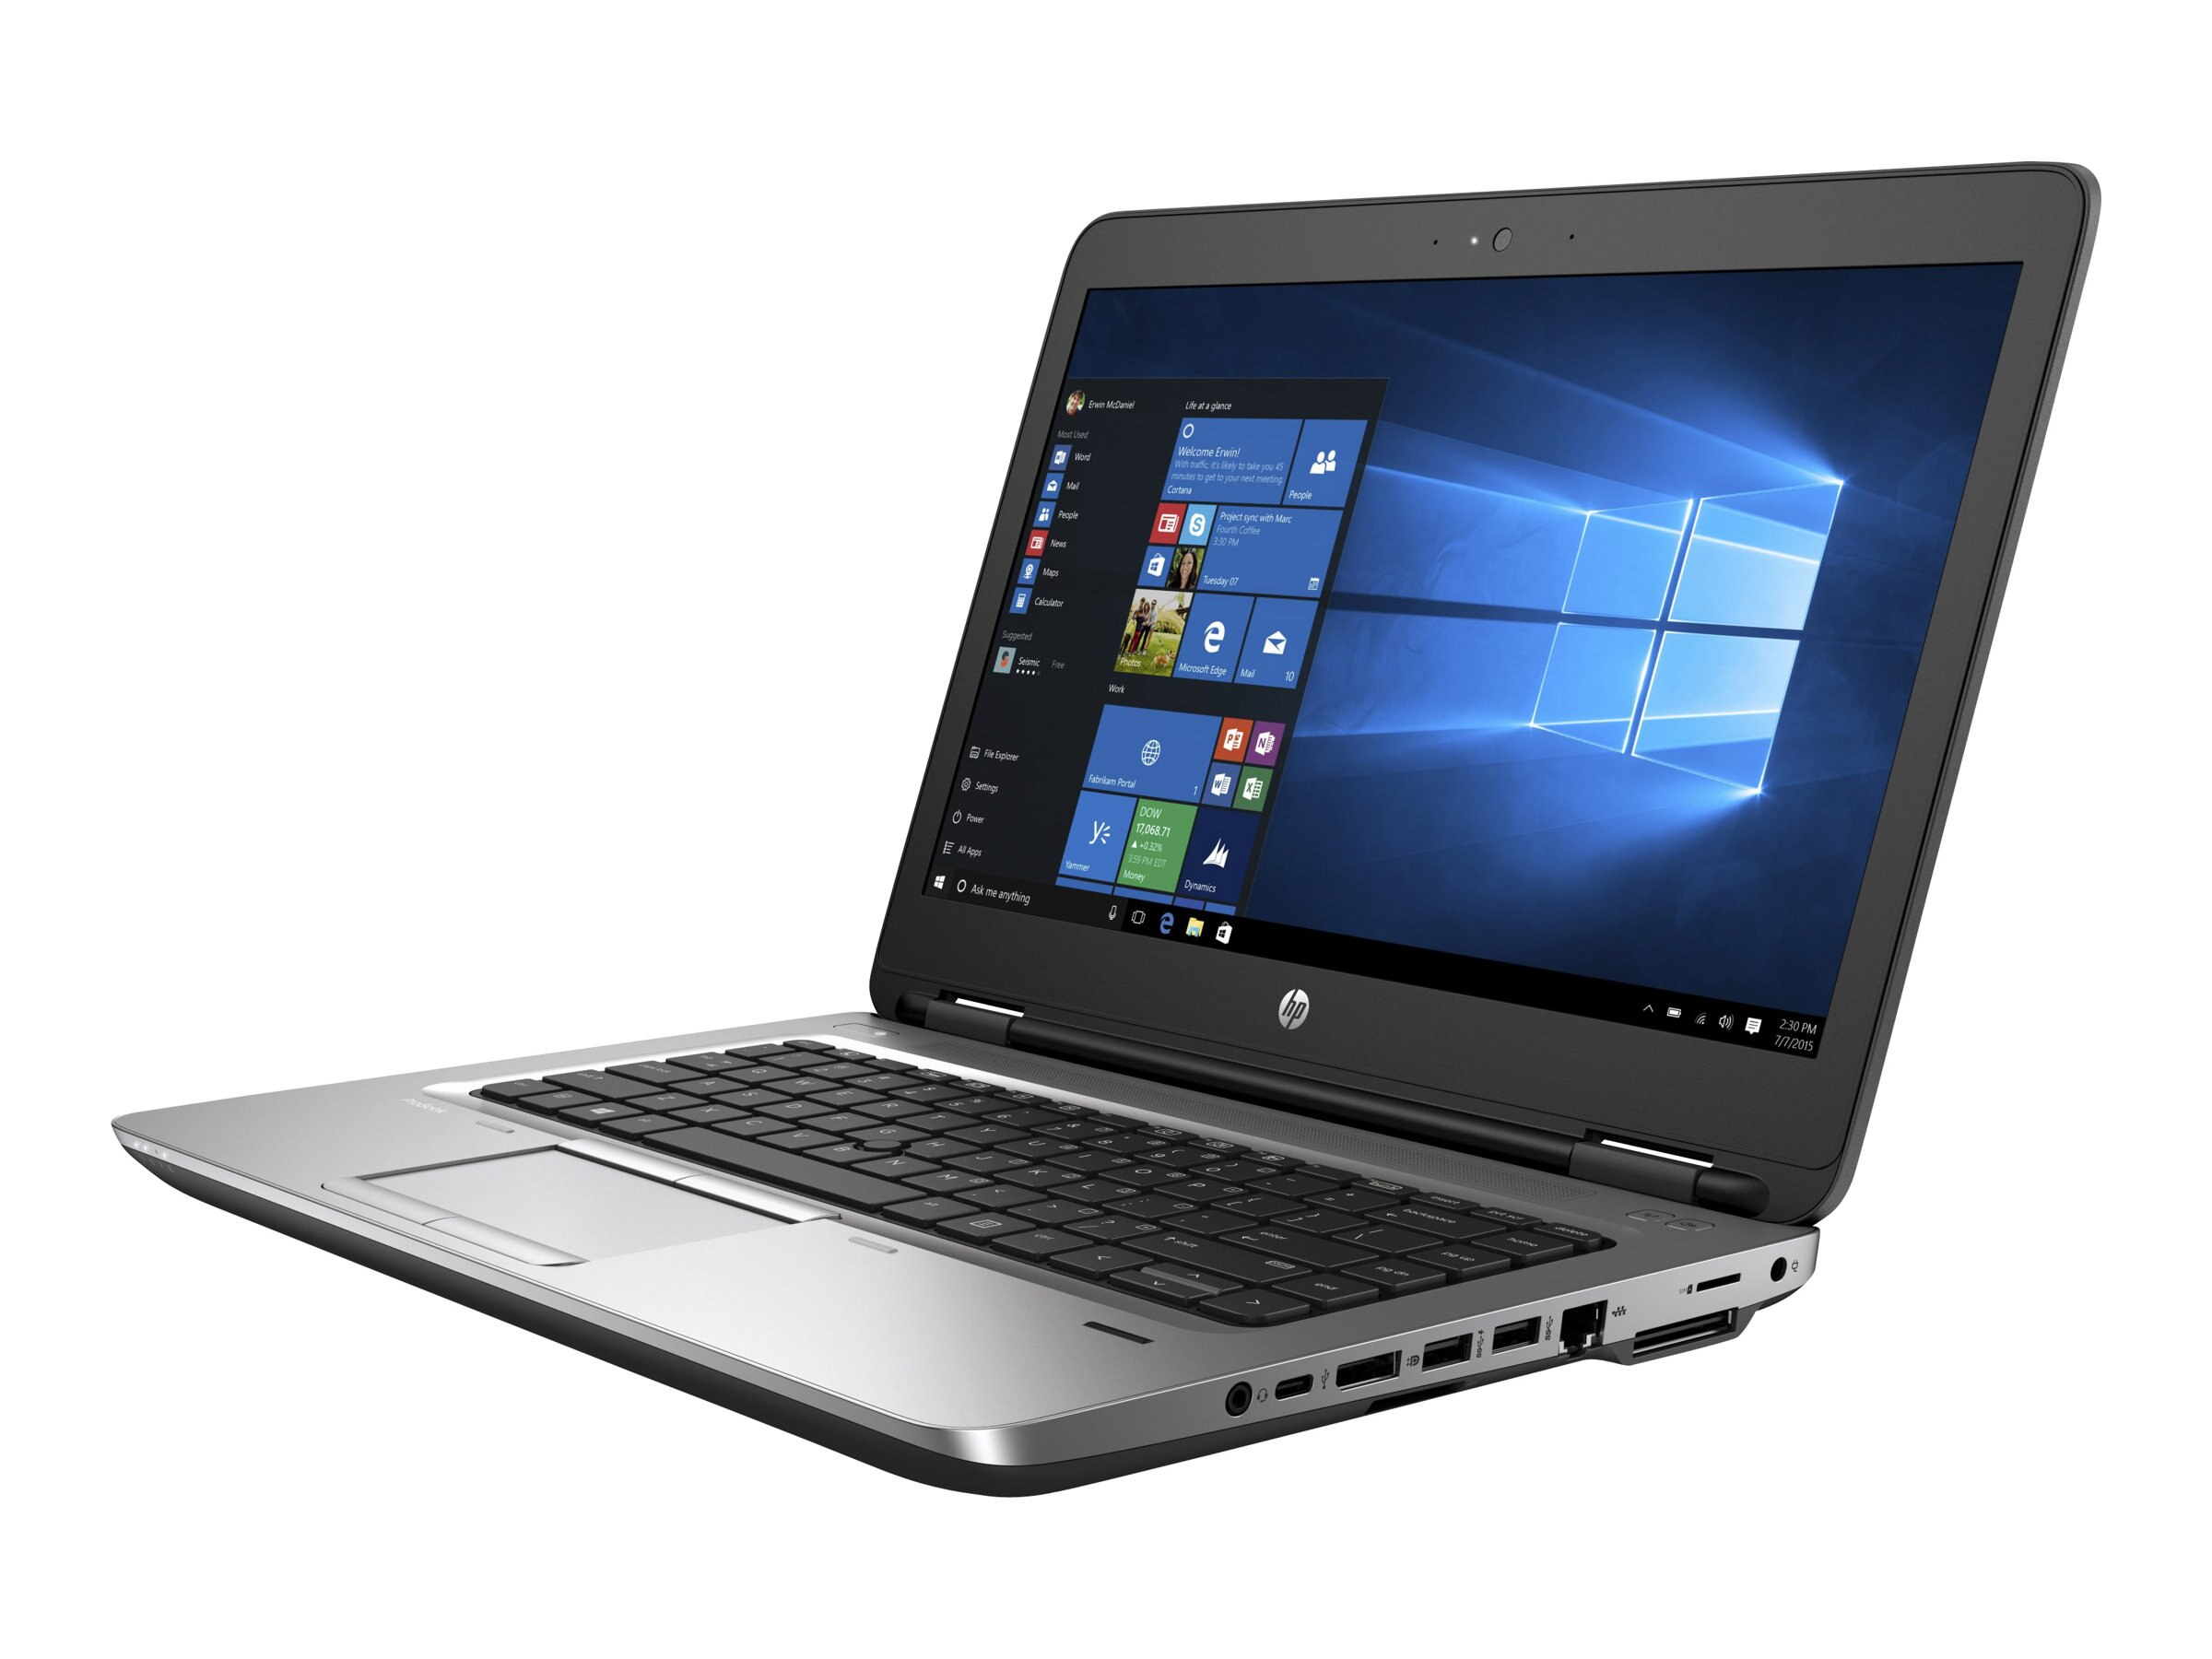 HP ProBook 645 G2 1.8GHz A10 Pro 14in display